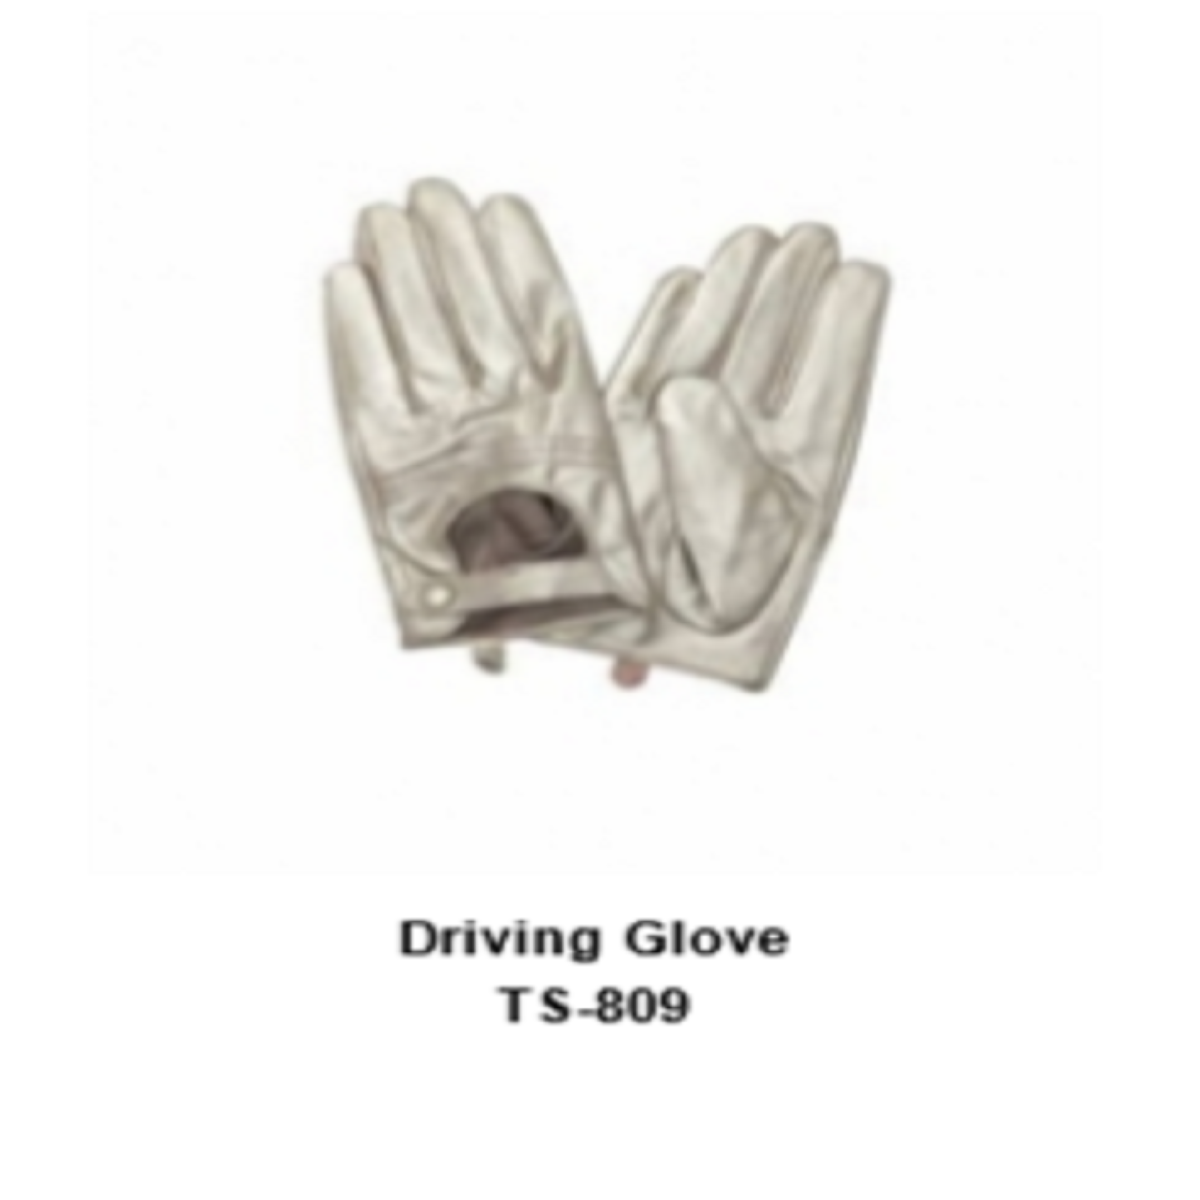 Leather Men's Fashion Driving Gloves Model No. TSI 809